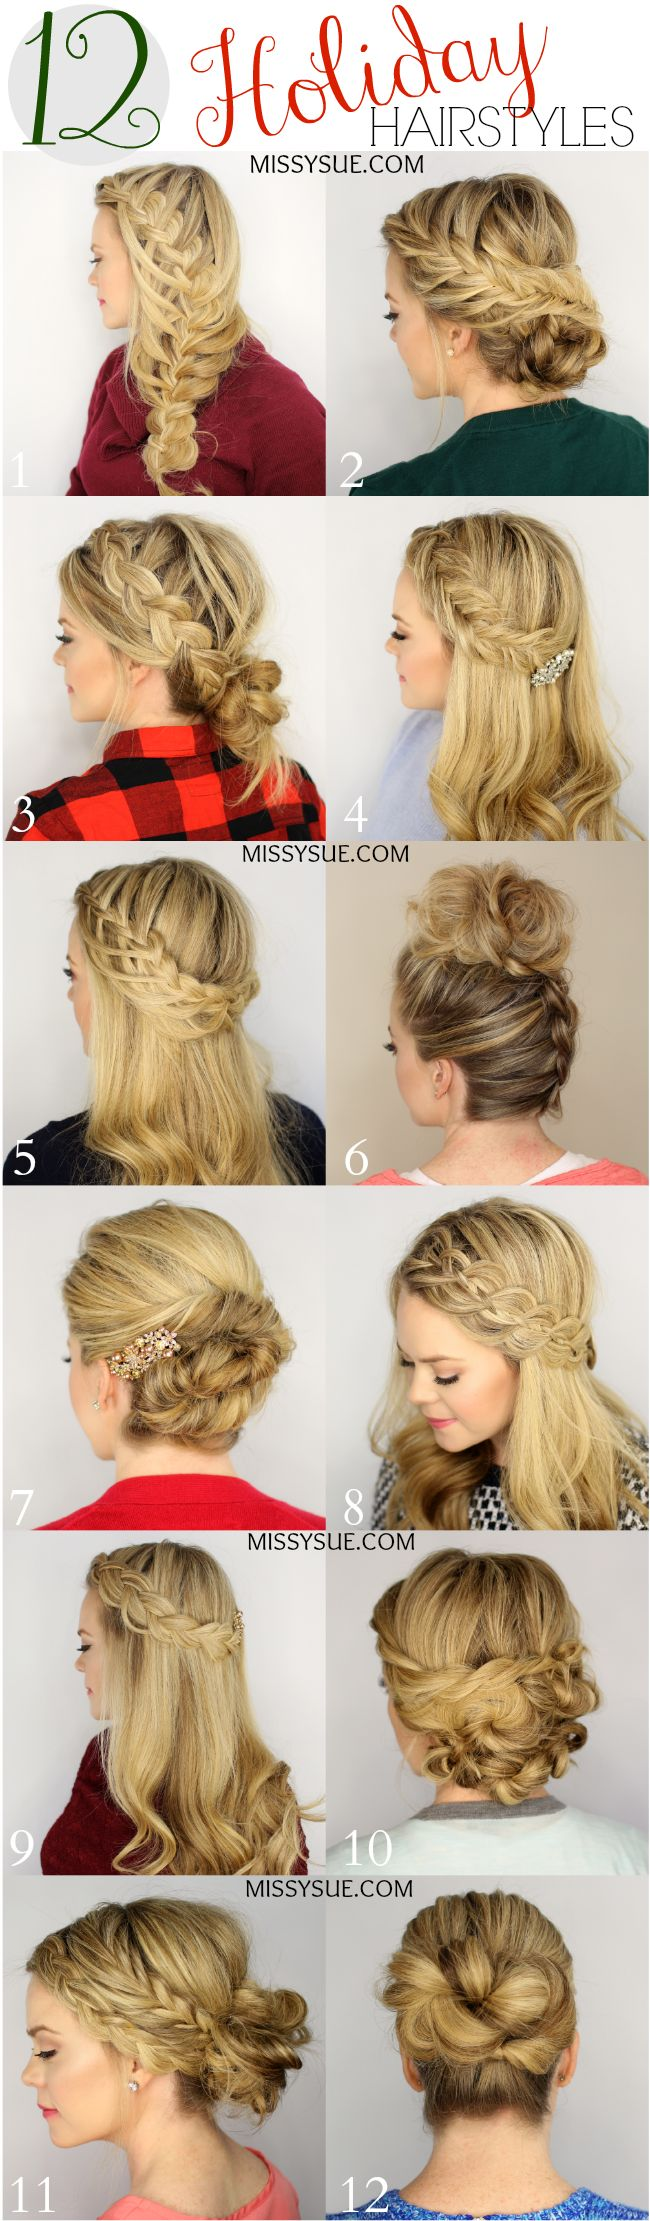 I like some of these braided hairstyles so pretty!